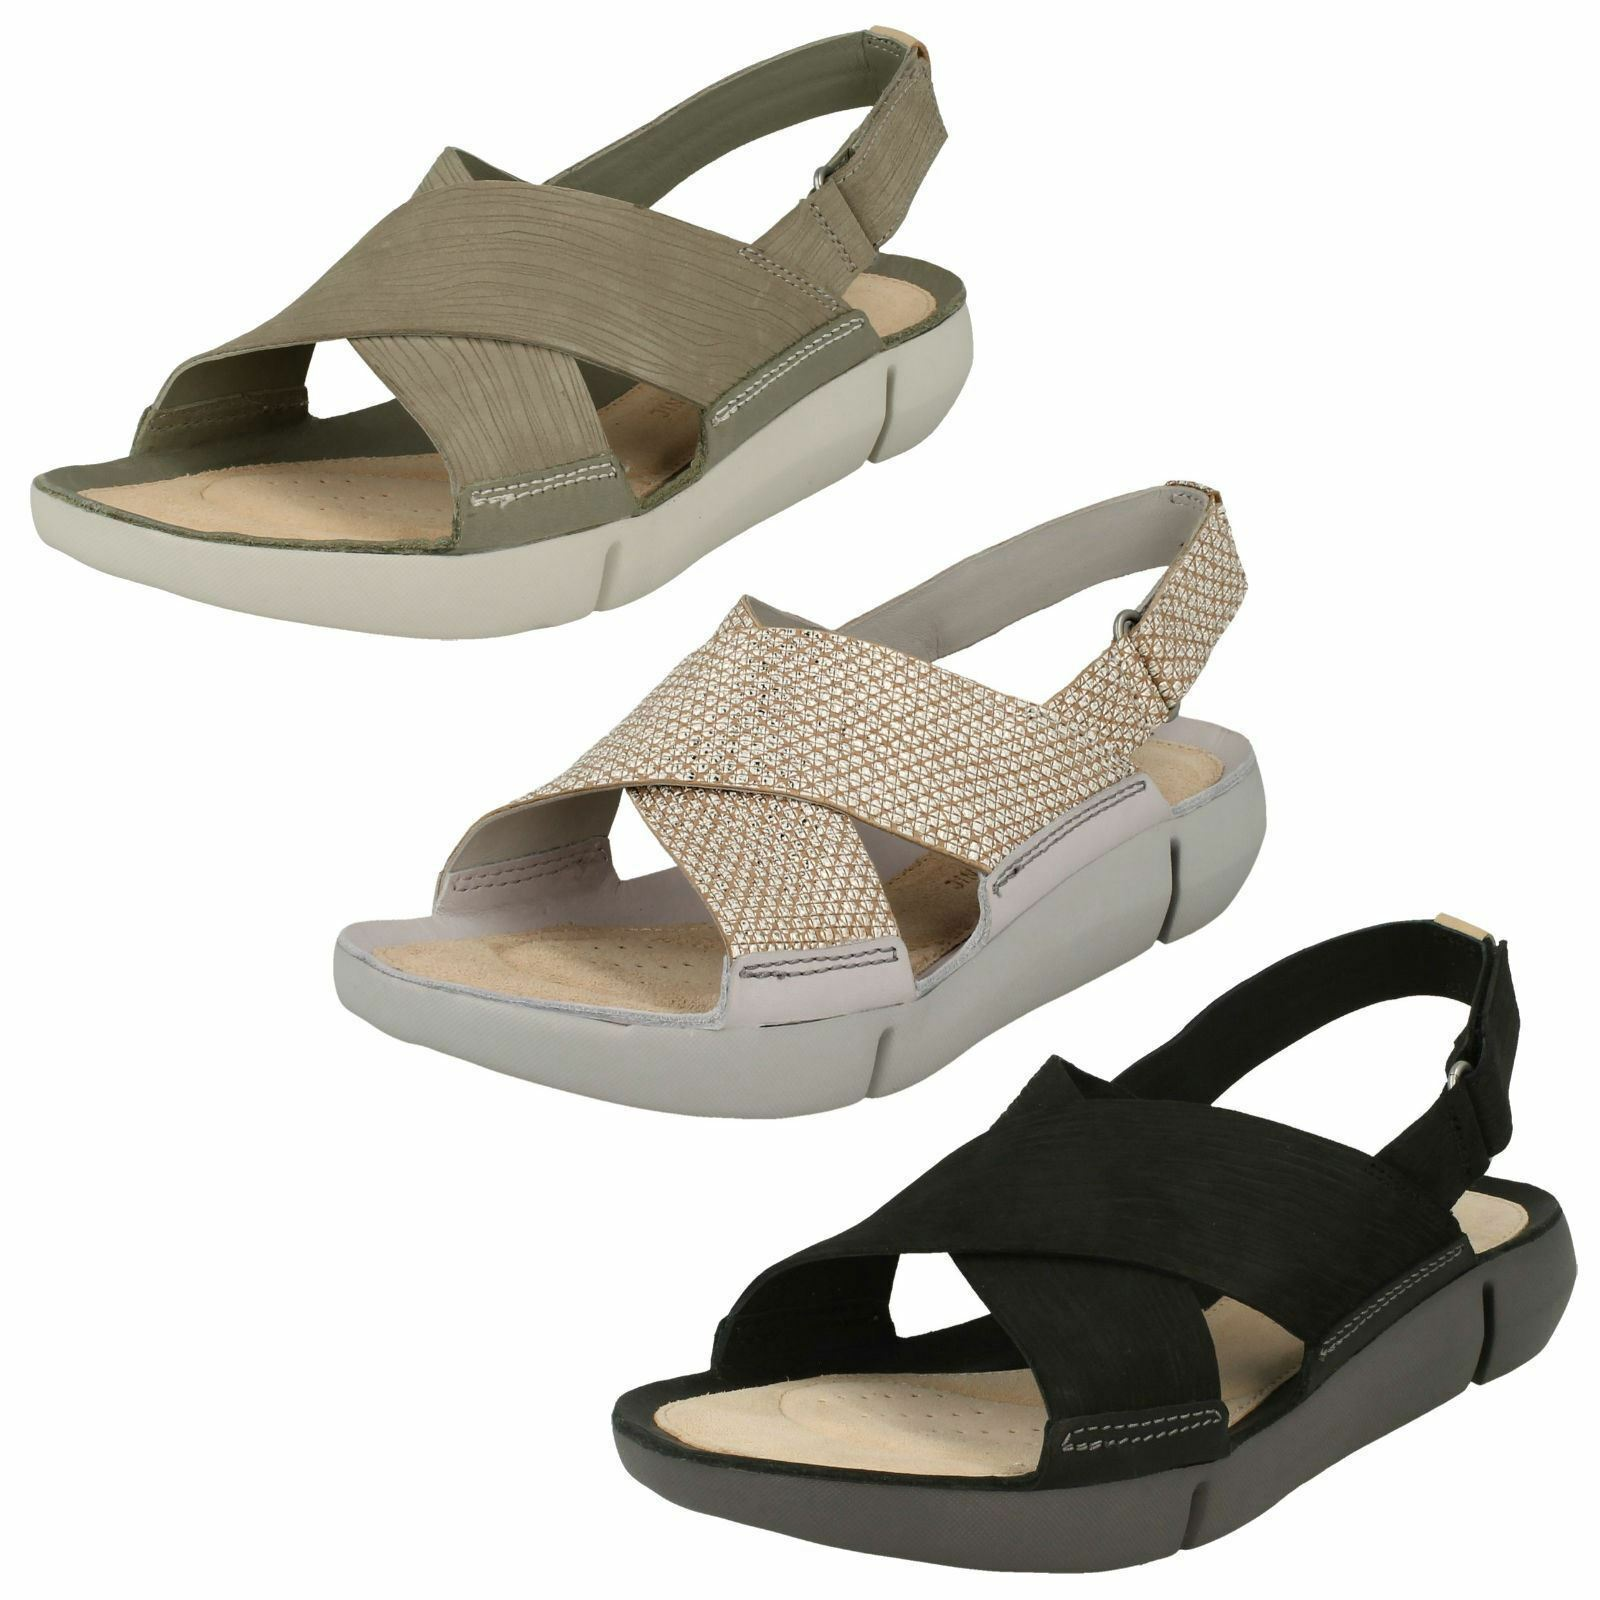 Último gran descuento Ladies Clarks Tri Chloe Casual Leather Crossover Sandals D Fitting